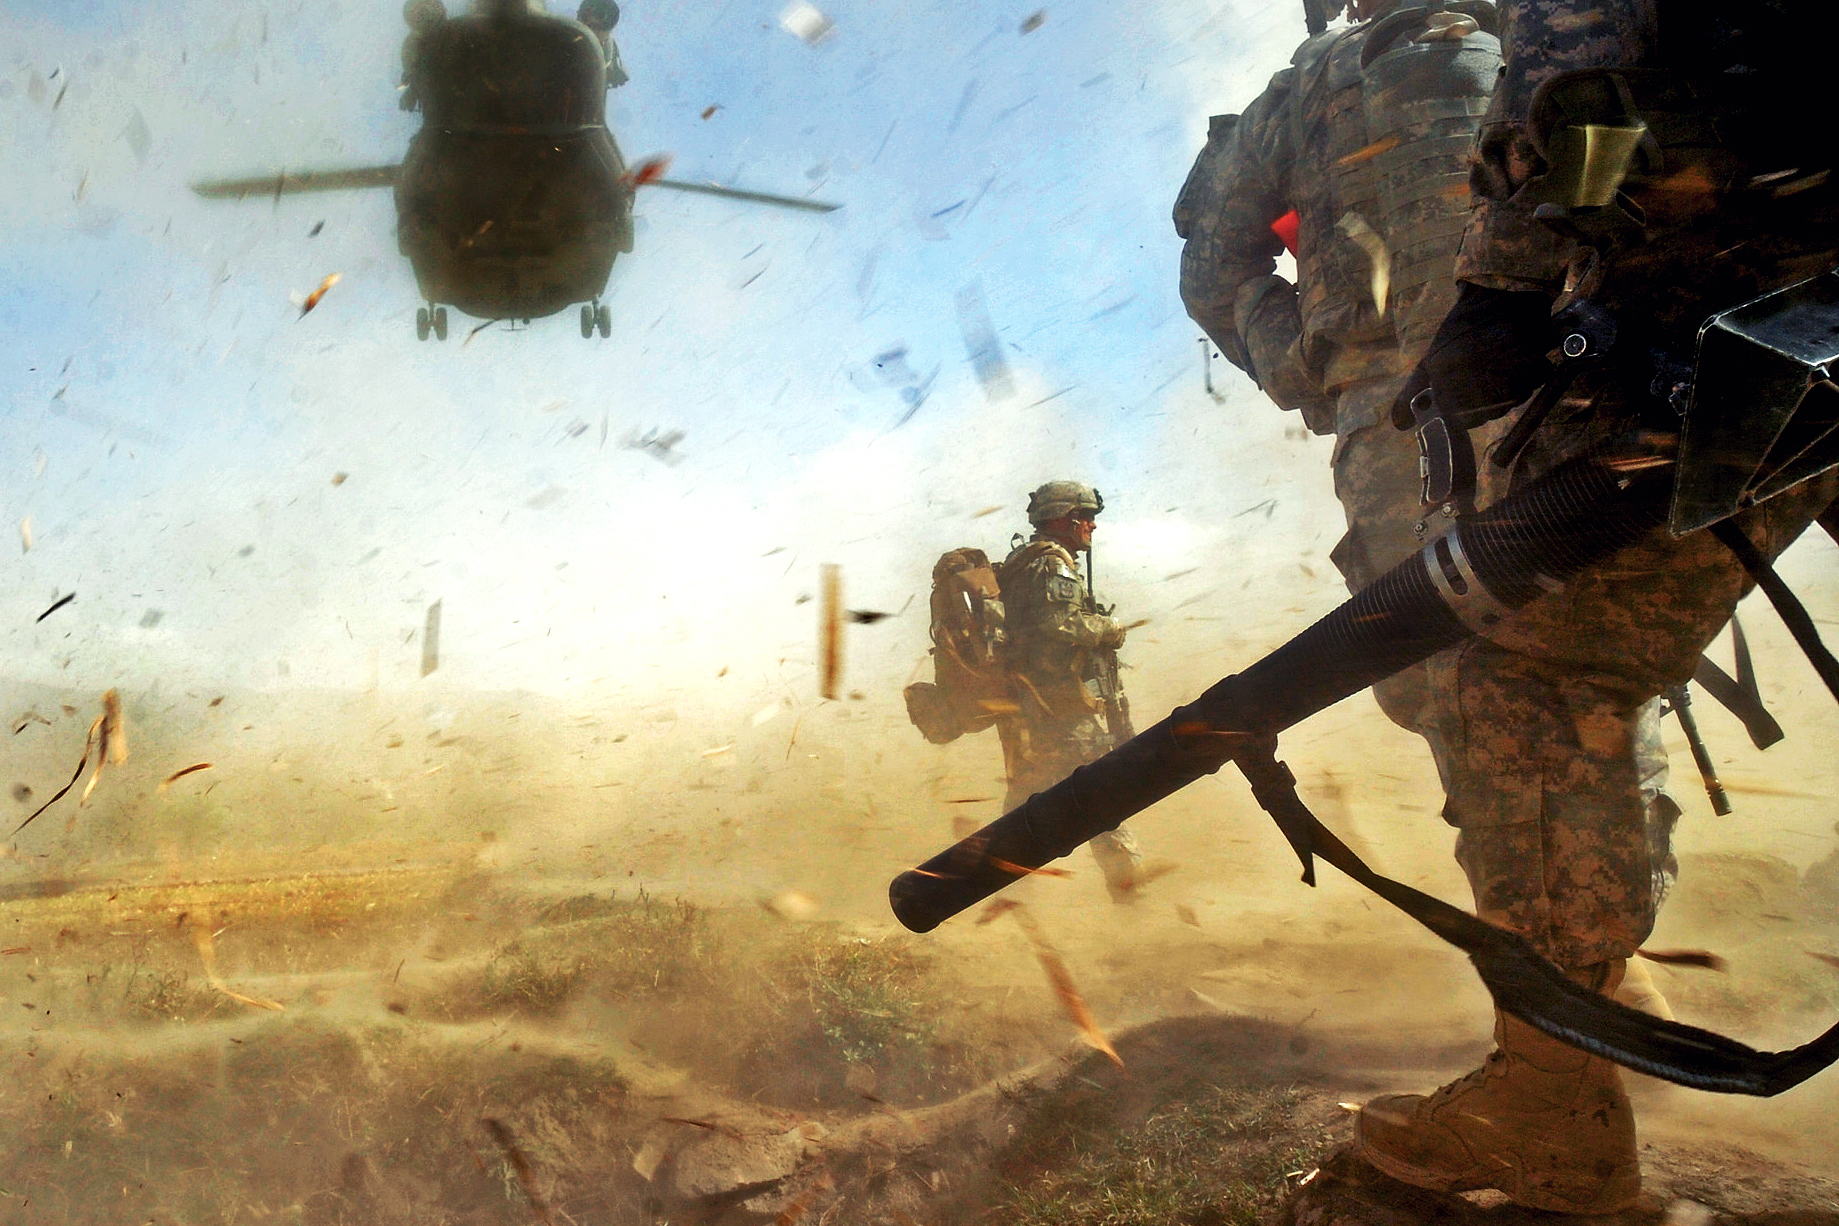 PAKTIKA PROVINCE, Afghanistan – Paratroopers from 3rd Platoon, Company B, 3rd Battalion, 509th Parachute Infantry Regiment, 4th Brigade Combat Team, 25th Infantry Division prepare to load a CH-47 Chinook Helicopter in the Bermel District of the Paktika province in eastern Afghanistan, Oct. 13, during an air-assault mission to detain a known militant. (Photo by U.S. Army Pfc. Andrya Hill, 4th Brigade Combat Team, 25th Infantry Division Public Affairs)